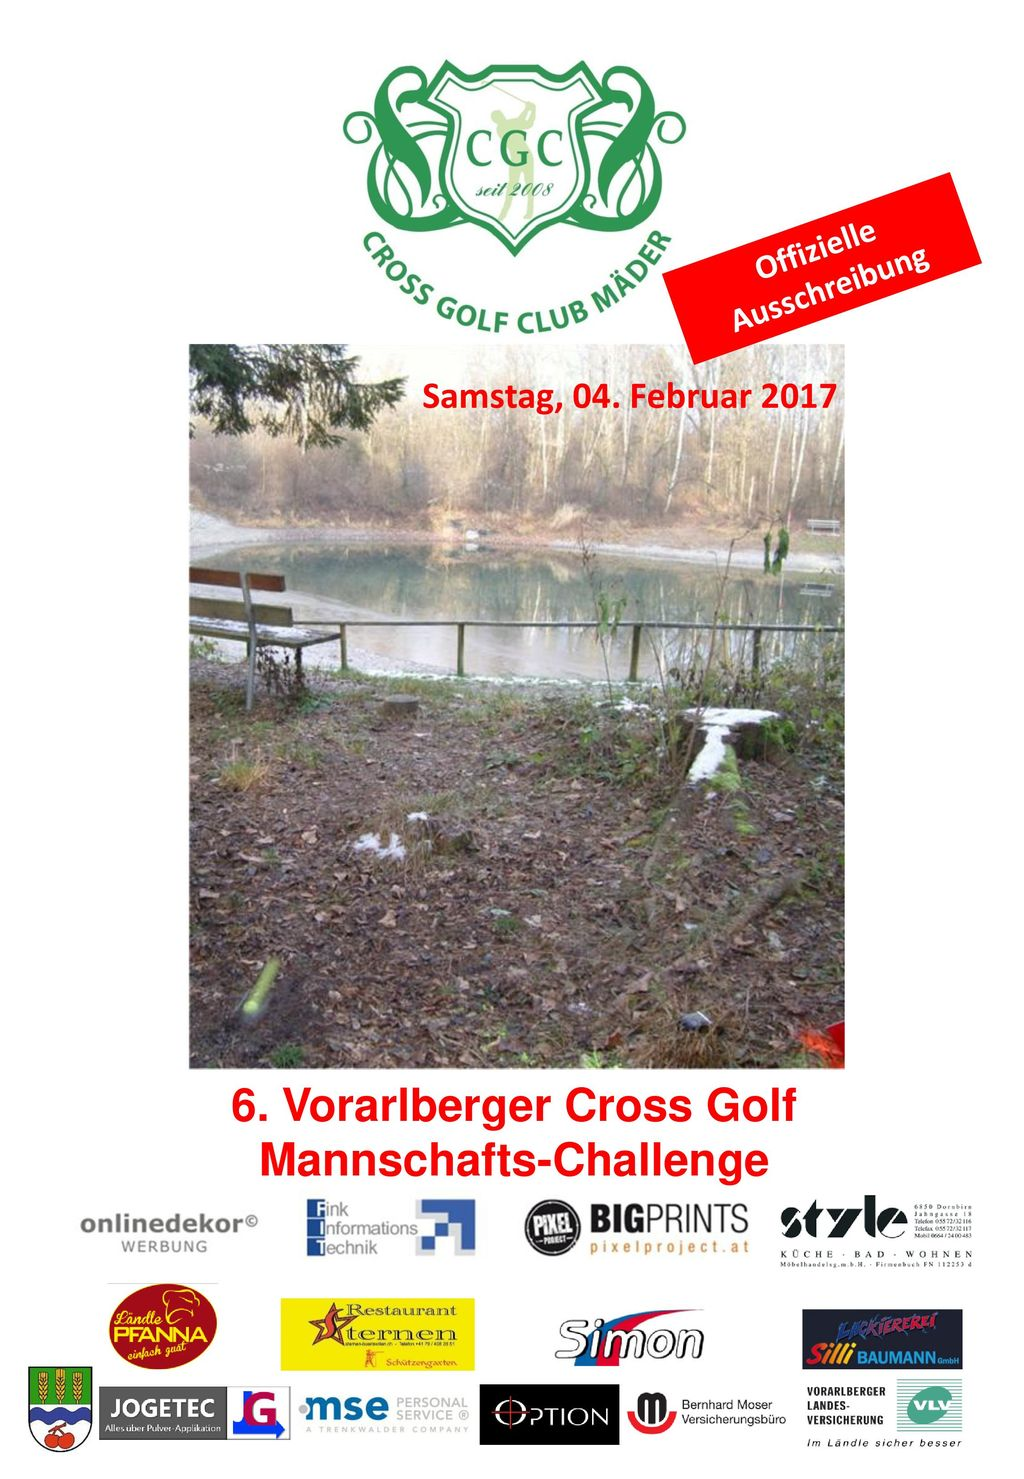 6. Vorarlberger Cross Golf Mannschafts-Challenge